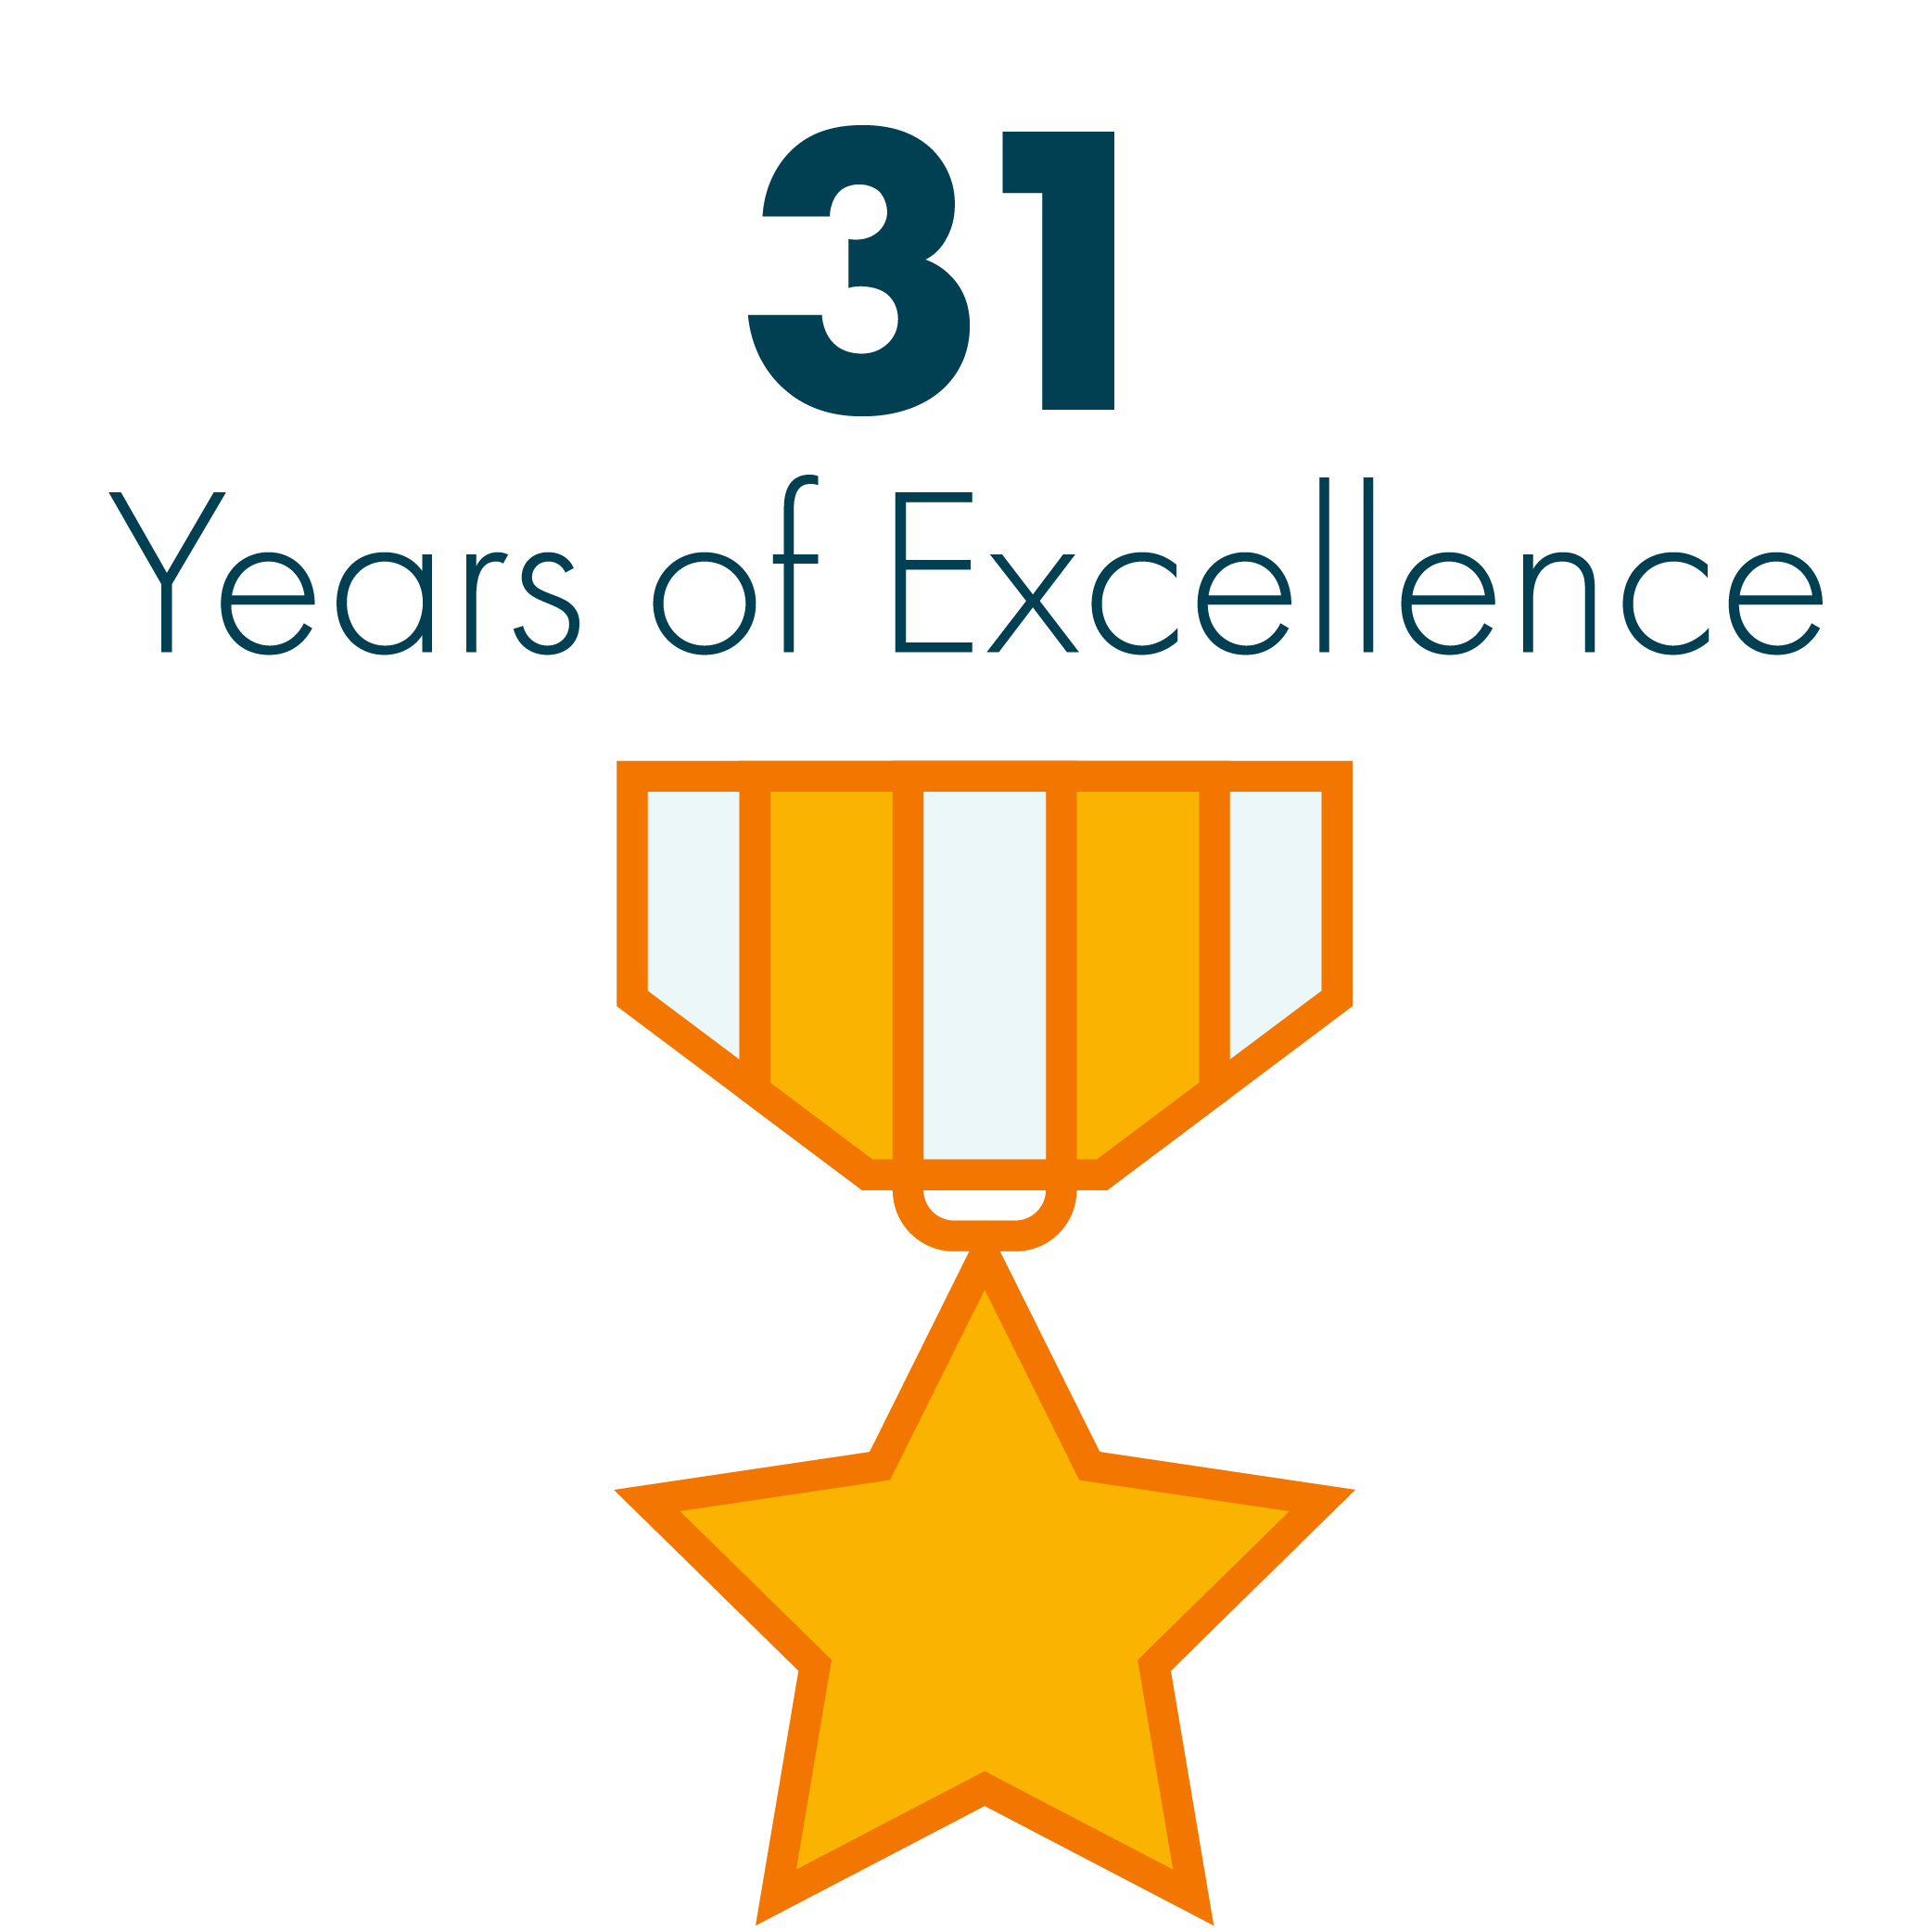 31 Years of Excellence